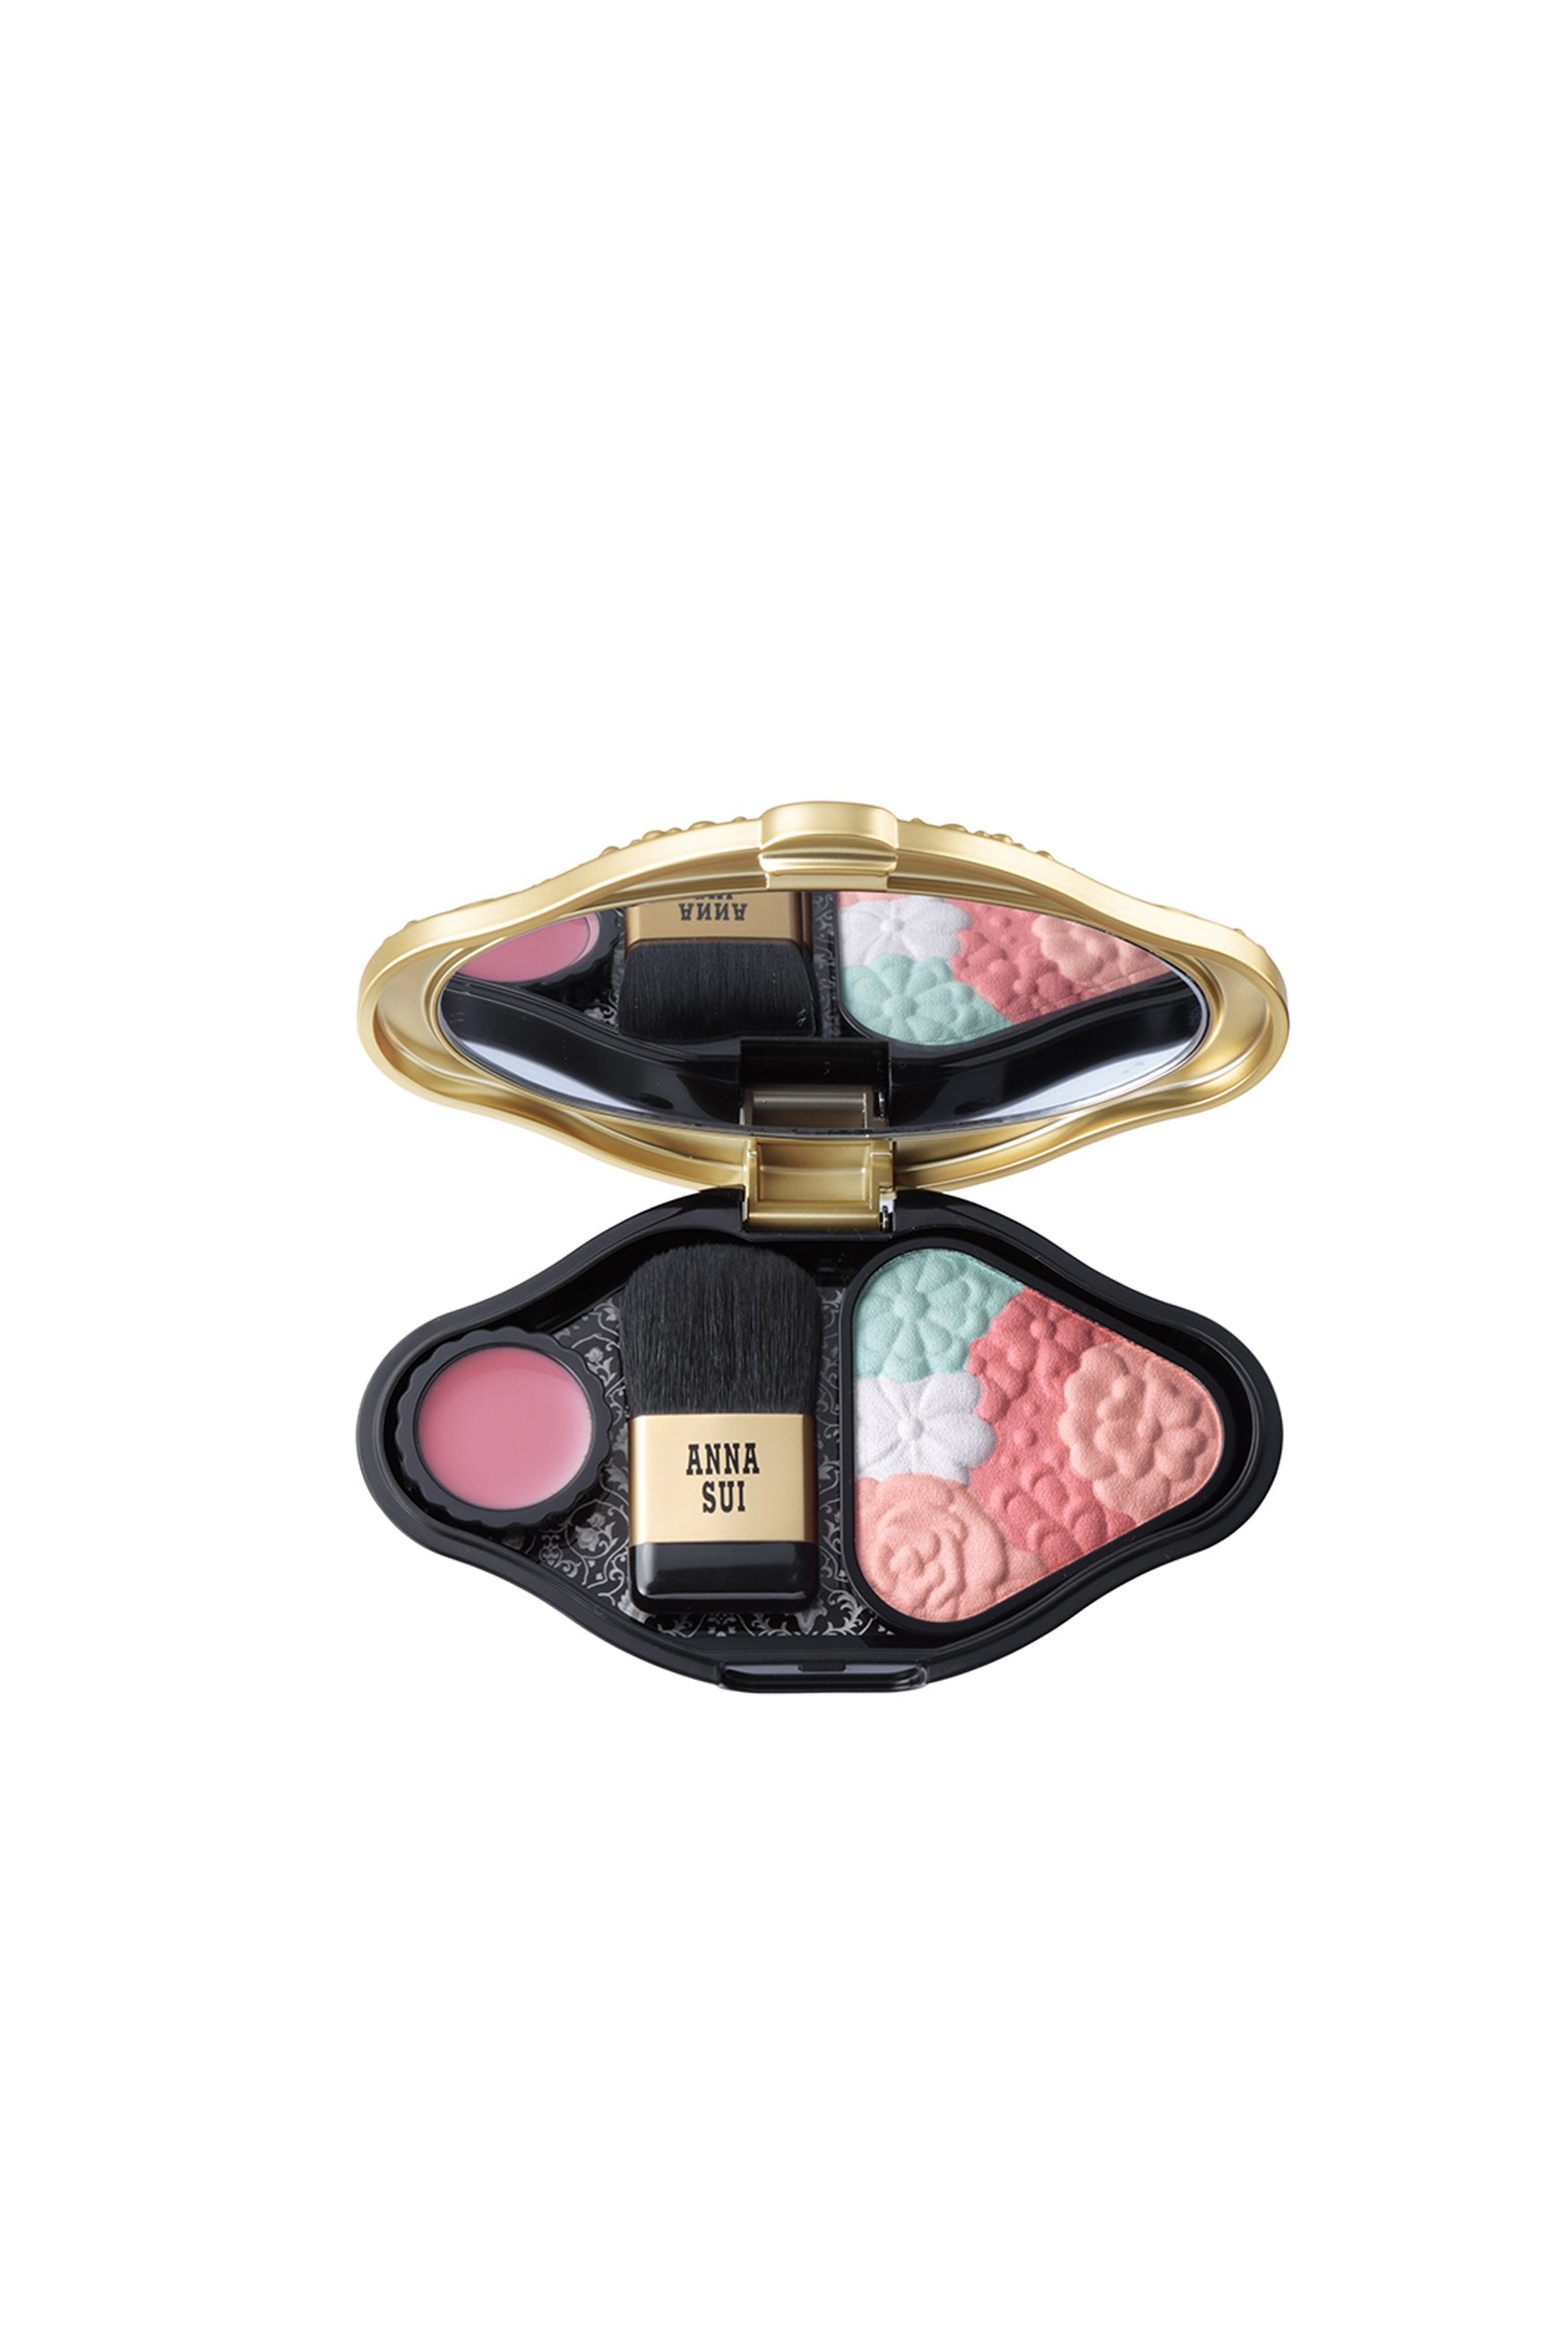 https://anna-sui.myshopify.com/products/face-color